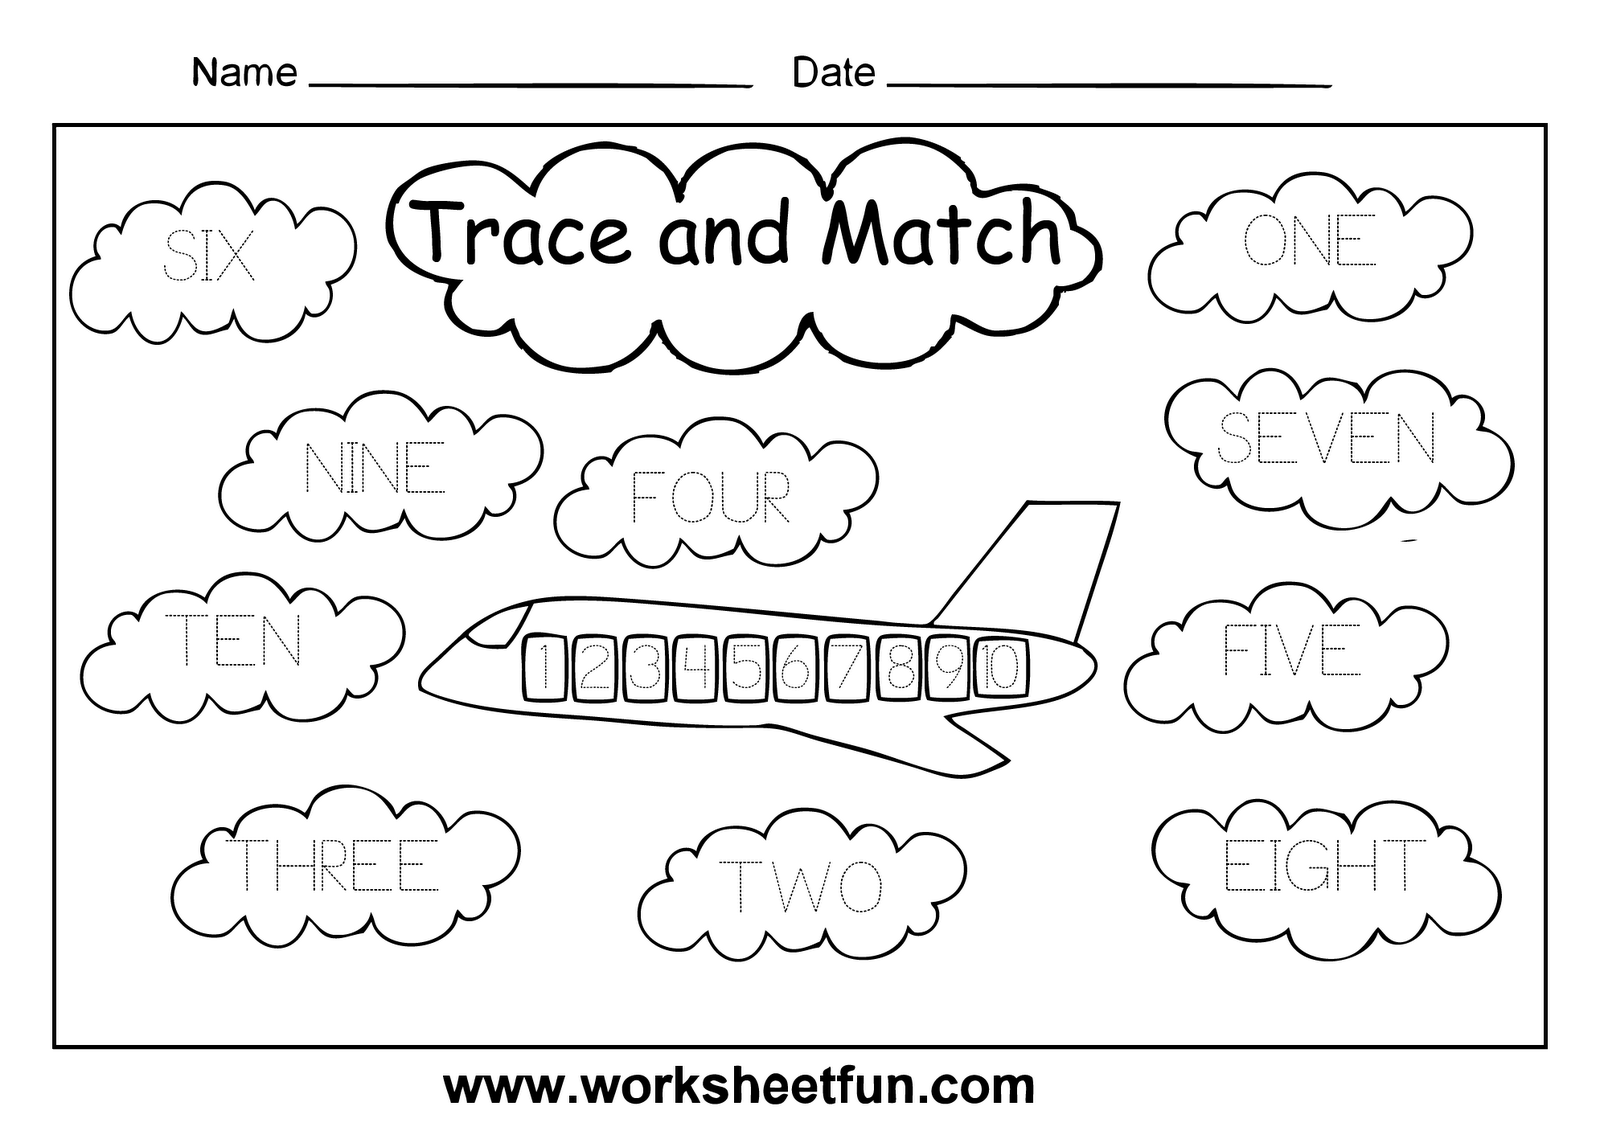 Proatmealus  Unique Numbers Worksheet    Narrativamente With Interesting English Worksheets Year  Besides Worksheets For Prek Free Furthermore Interpreting Graphs And Tables Worksheets With Archaic Dental Health Worksheet Also Maths Worksheets For Adults In Addition Worksheet For Mean Median And Mode And Pre K Worksheet Printables As Well As Grade  Math Worksheets Printable Additionally Gcse French Worksheets From Narrativamentecom With Proatmealus  Interesting Numbers Worksheet    Narrativamente With Archaic English Worksheets Year  Besides Worksheets For Prek Free Furthermore Interpreting Graphs And Tables Worksheets And Unique Dental Health Worksheet Also Maths Worksheets For Adults In Addition Worksheet For Mean Median And Mode From Narrativamentecom